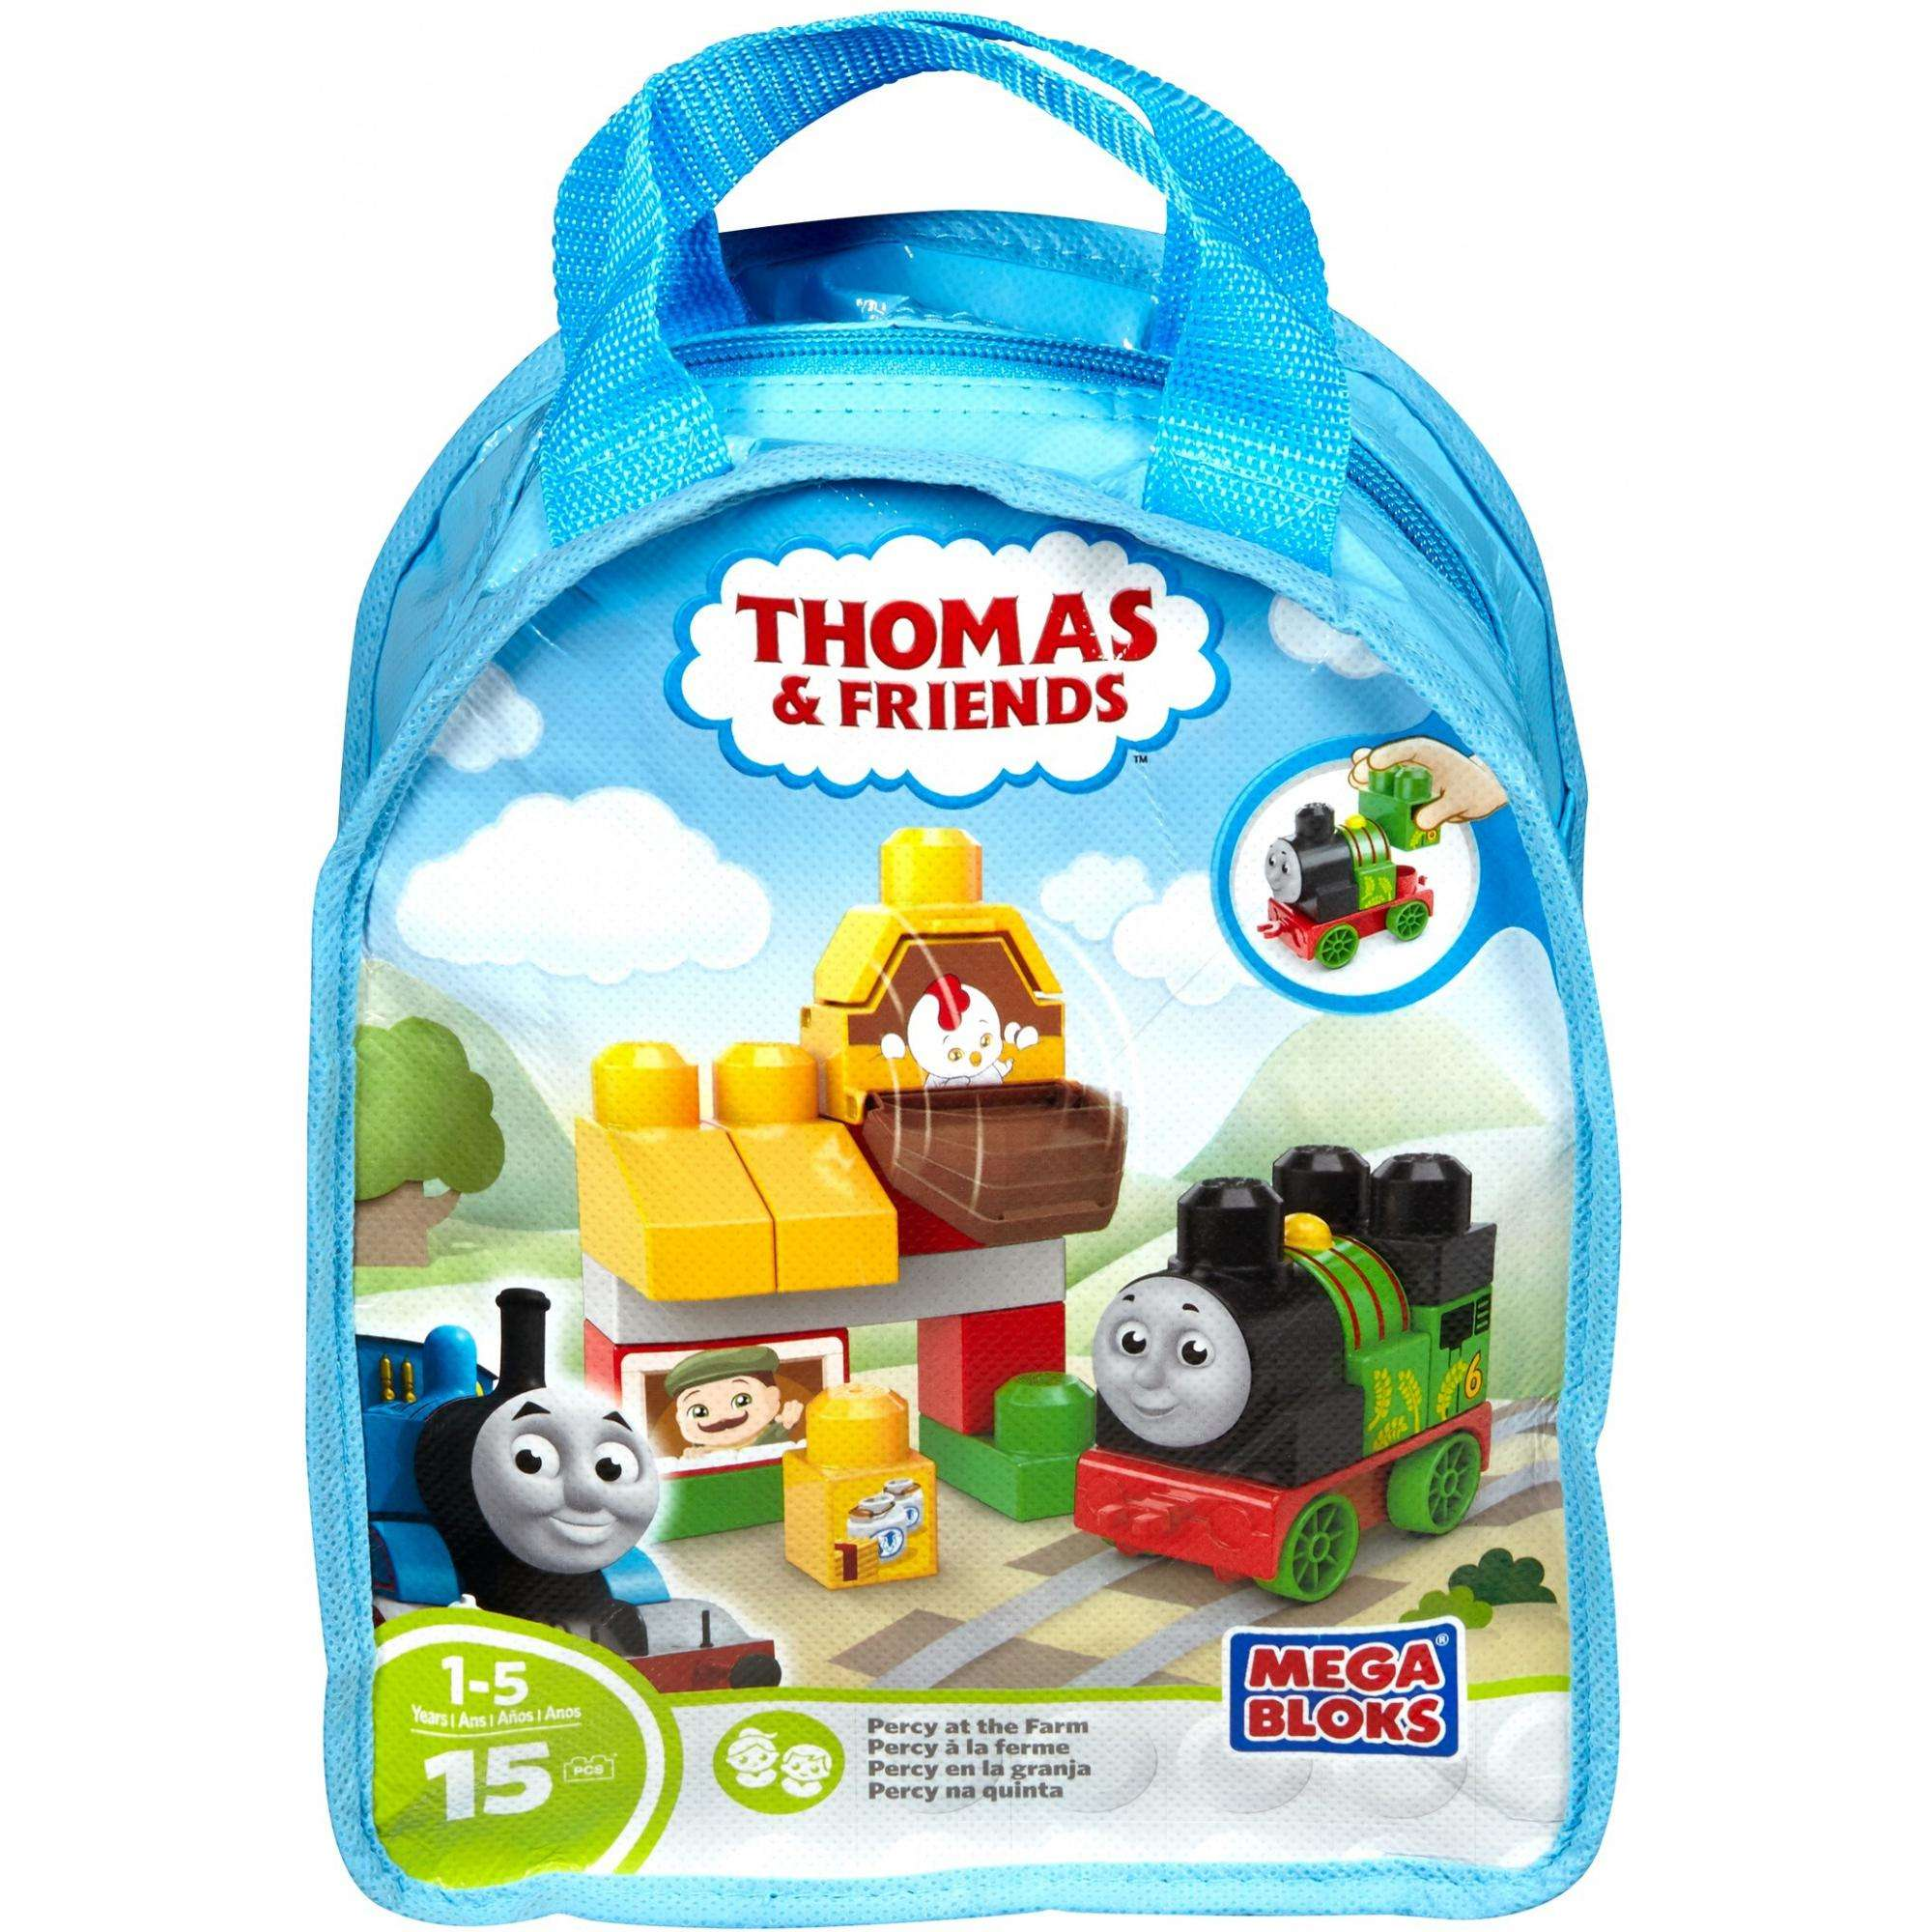 Mega Bloks Thomas & Friends Percy at the Farm Building Bag